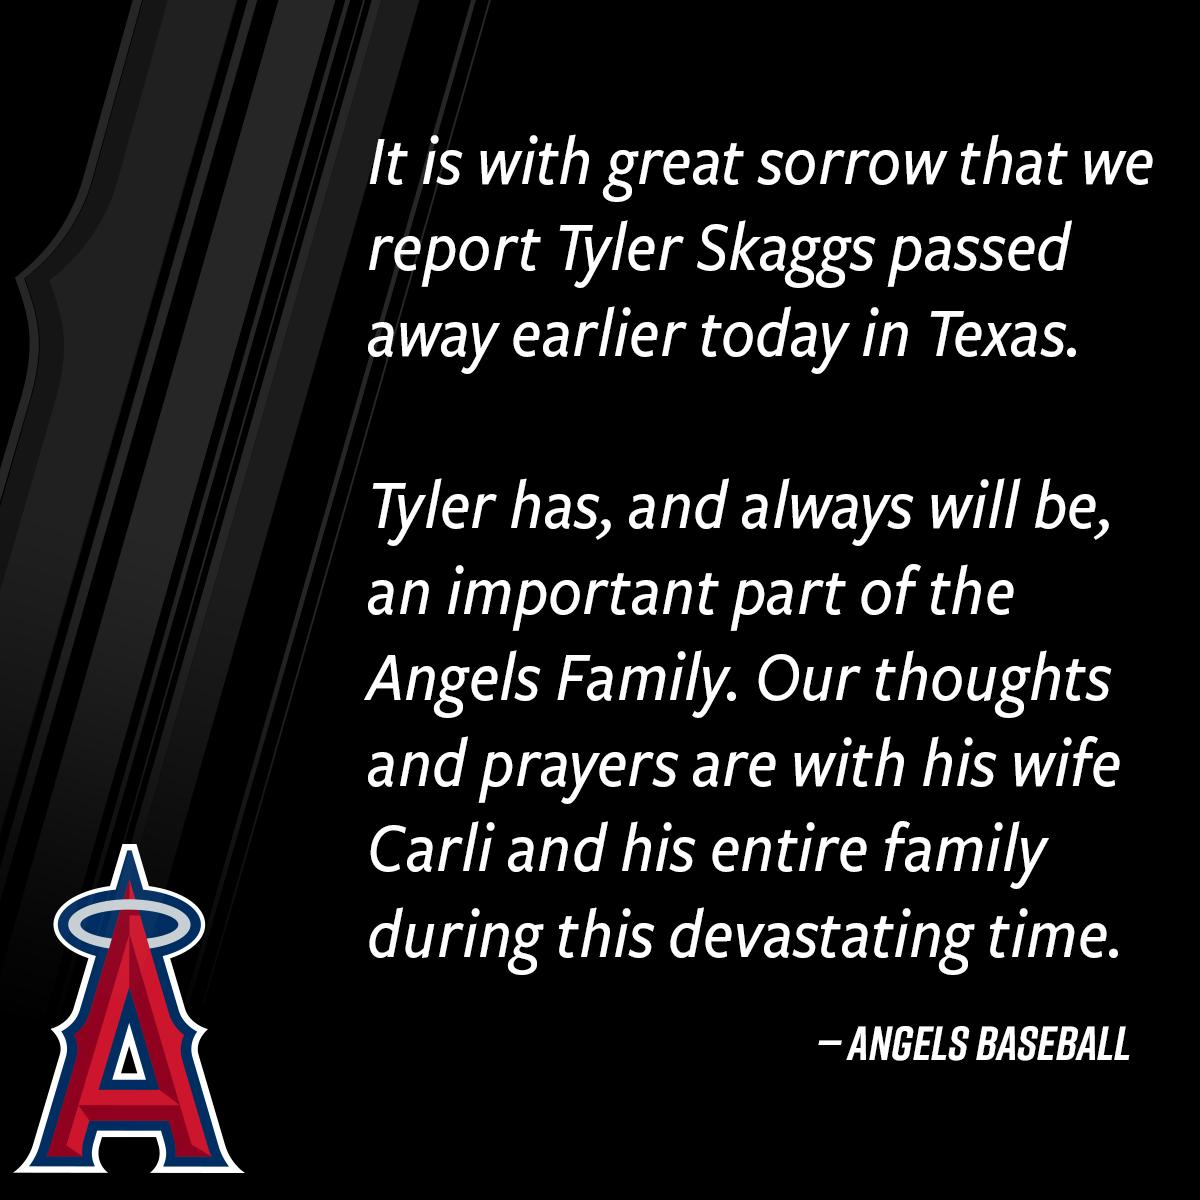 Angels statement on the passing of Tyler Skaggs.